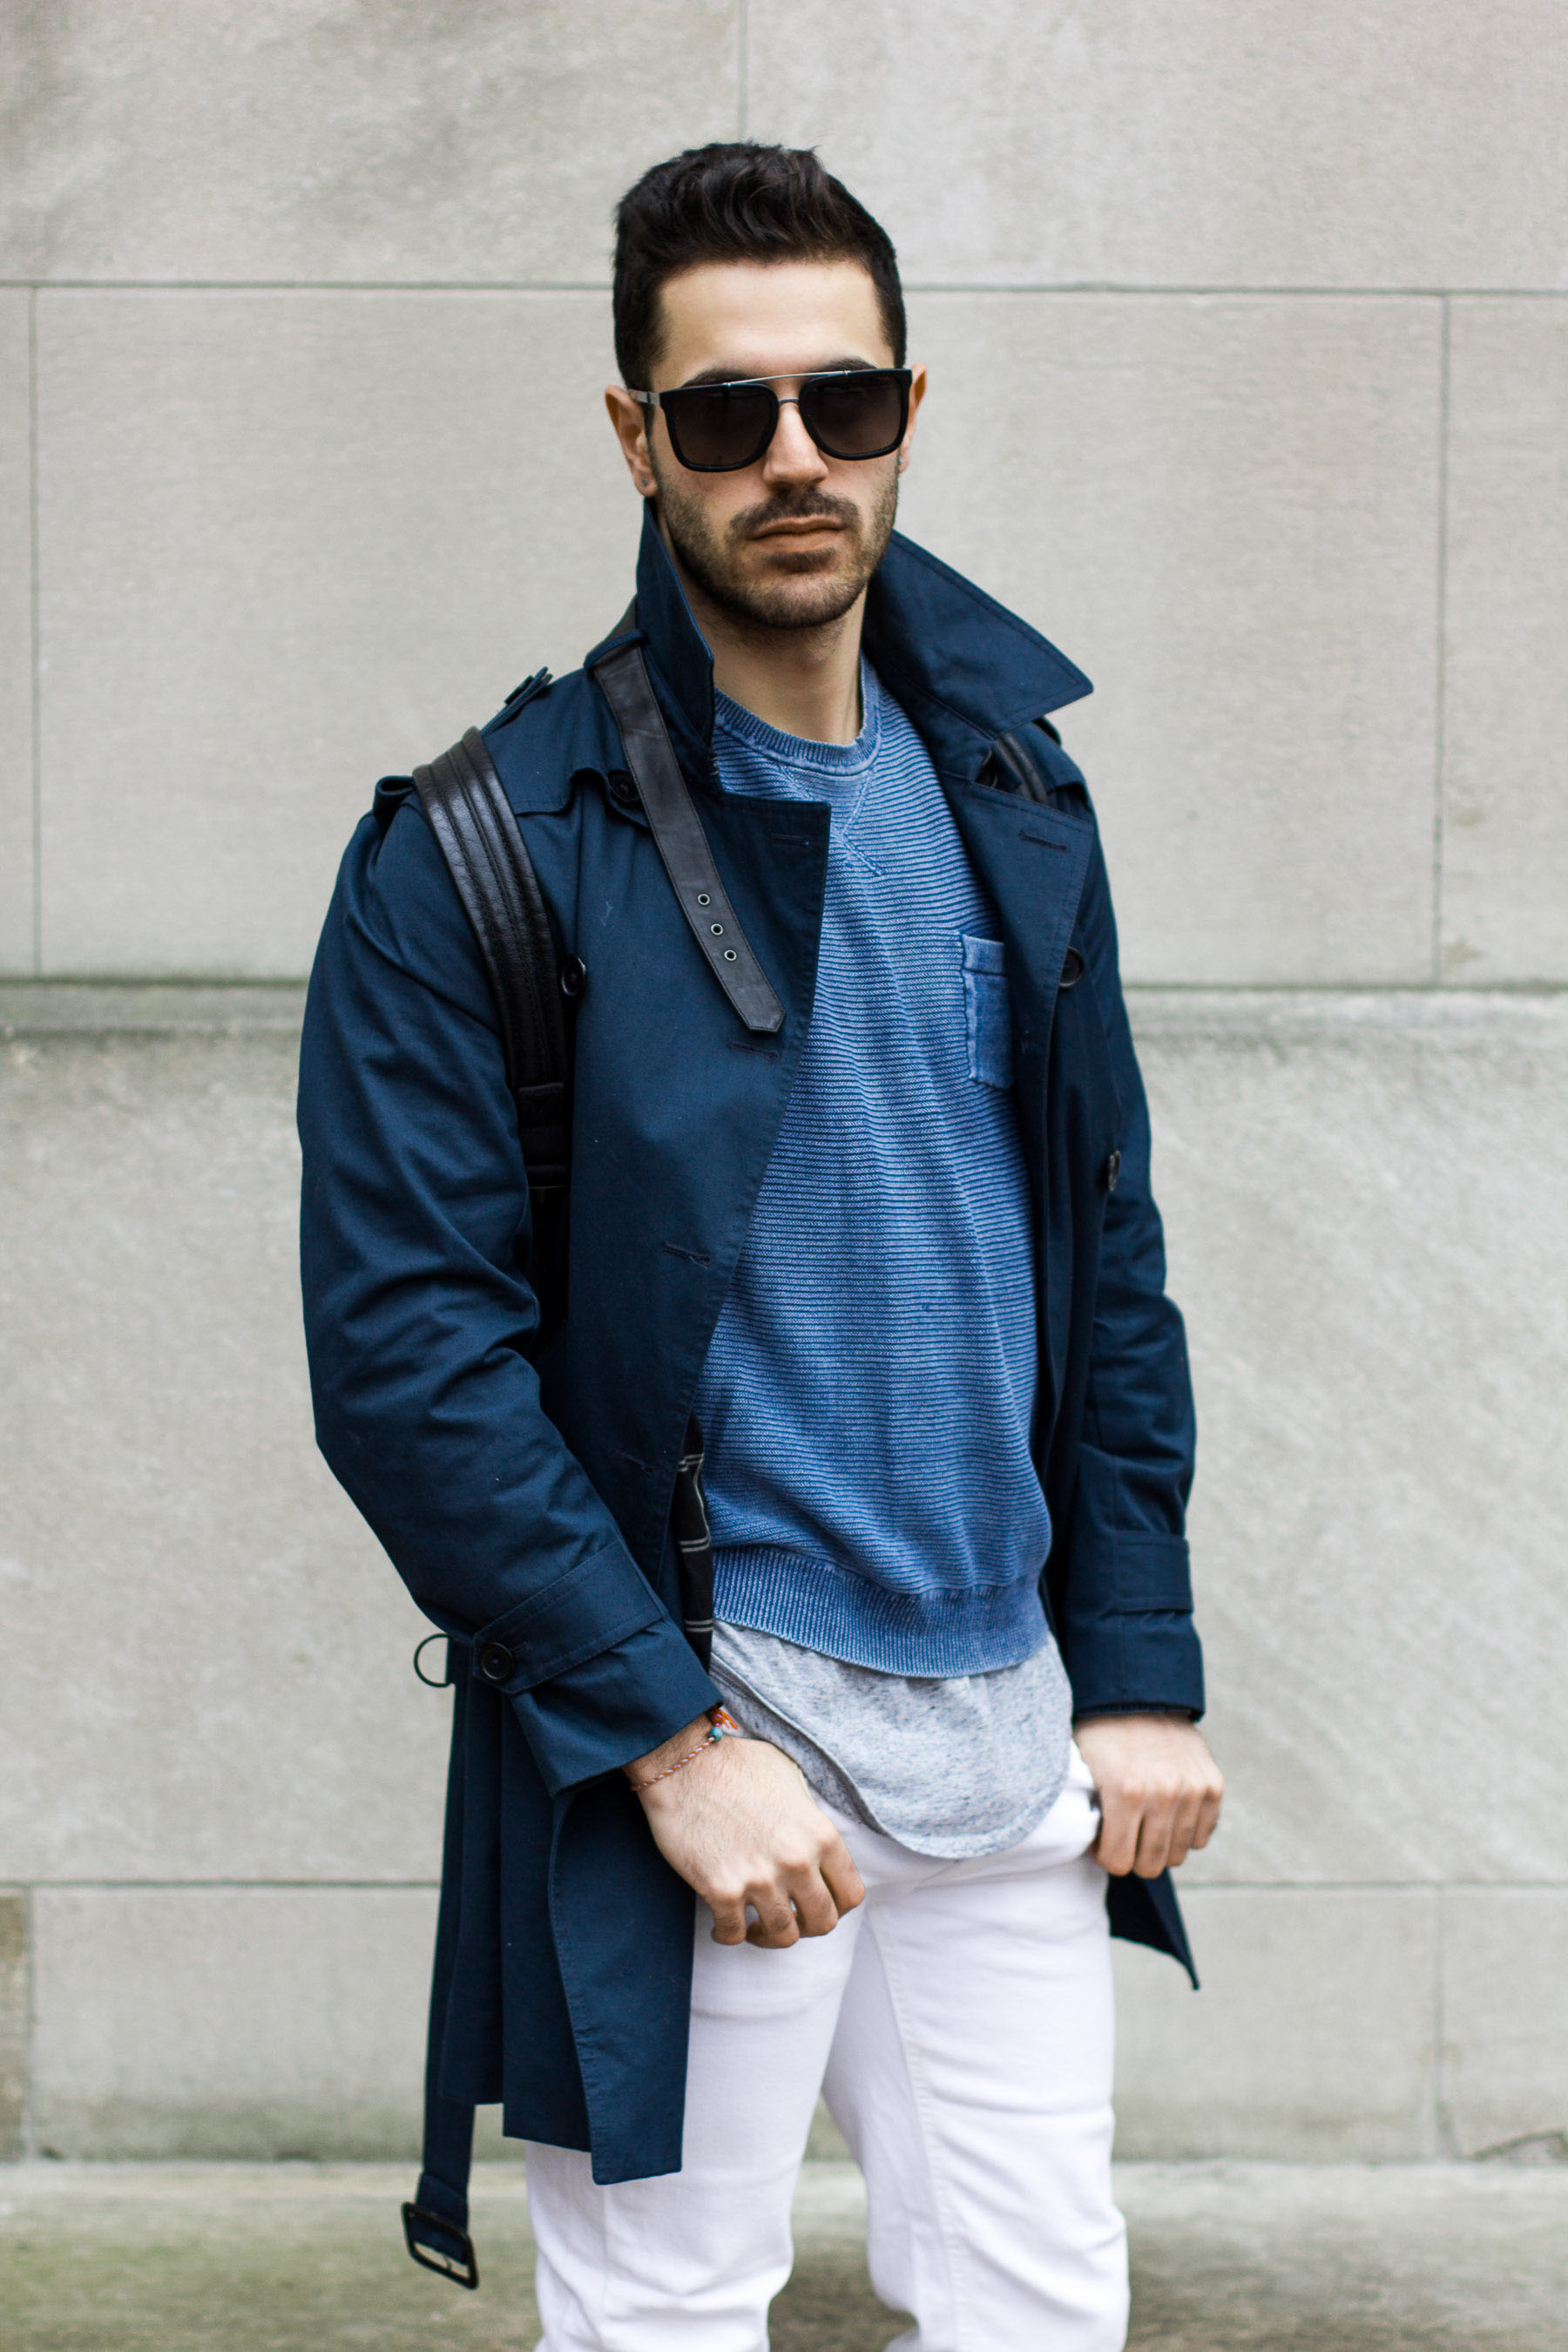 How to wear a trench coat 4 900x1350 2x